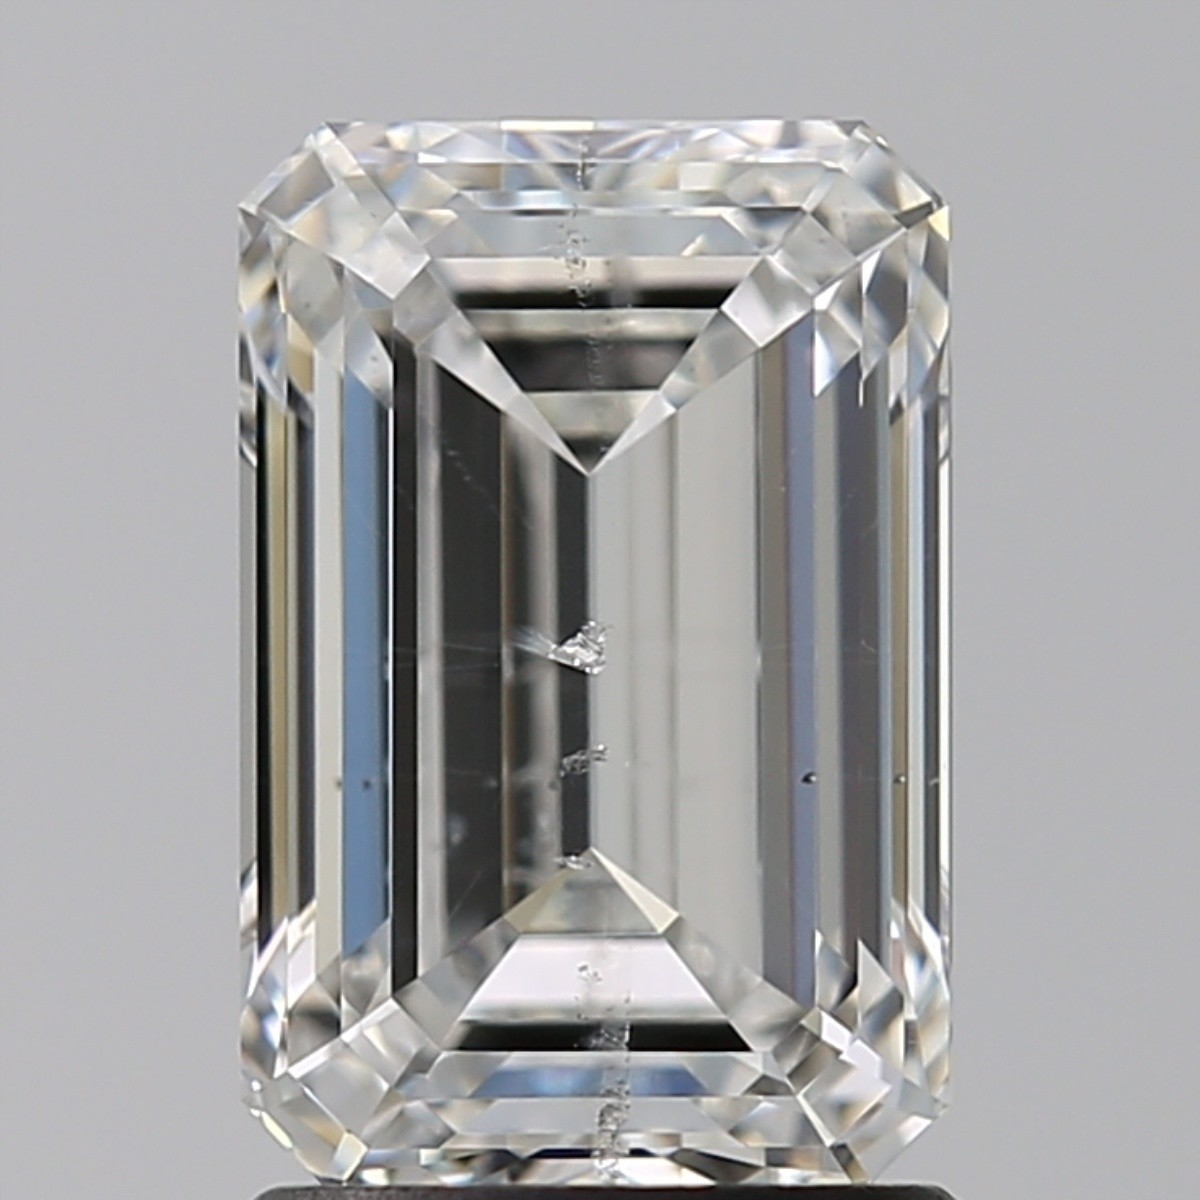 2.01 Carat Emerald Diamond (F/SI2)